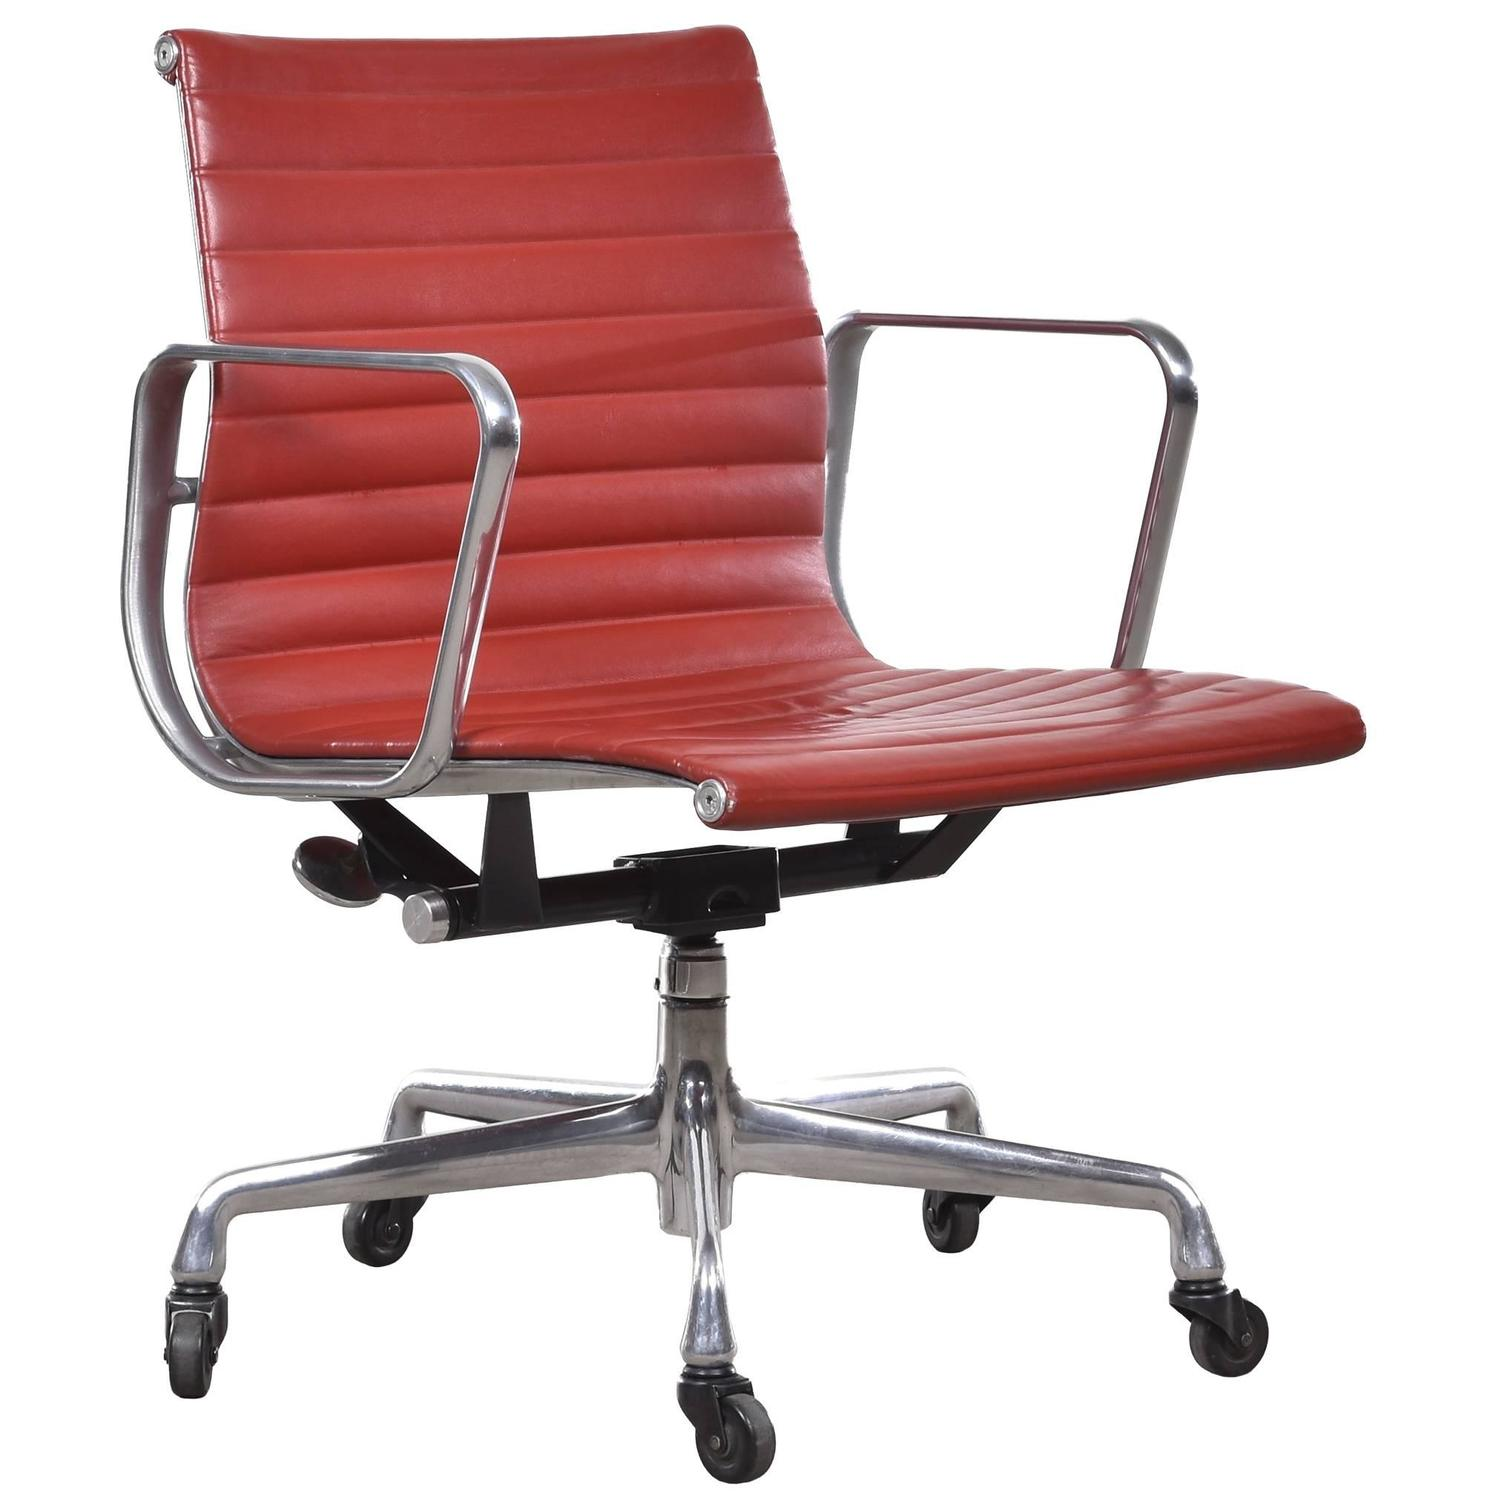 chair best pu products l dp office kitchen red amazon computer leather high executive seat back swivel home racing com choice desk